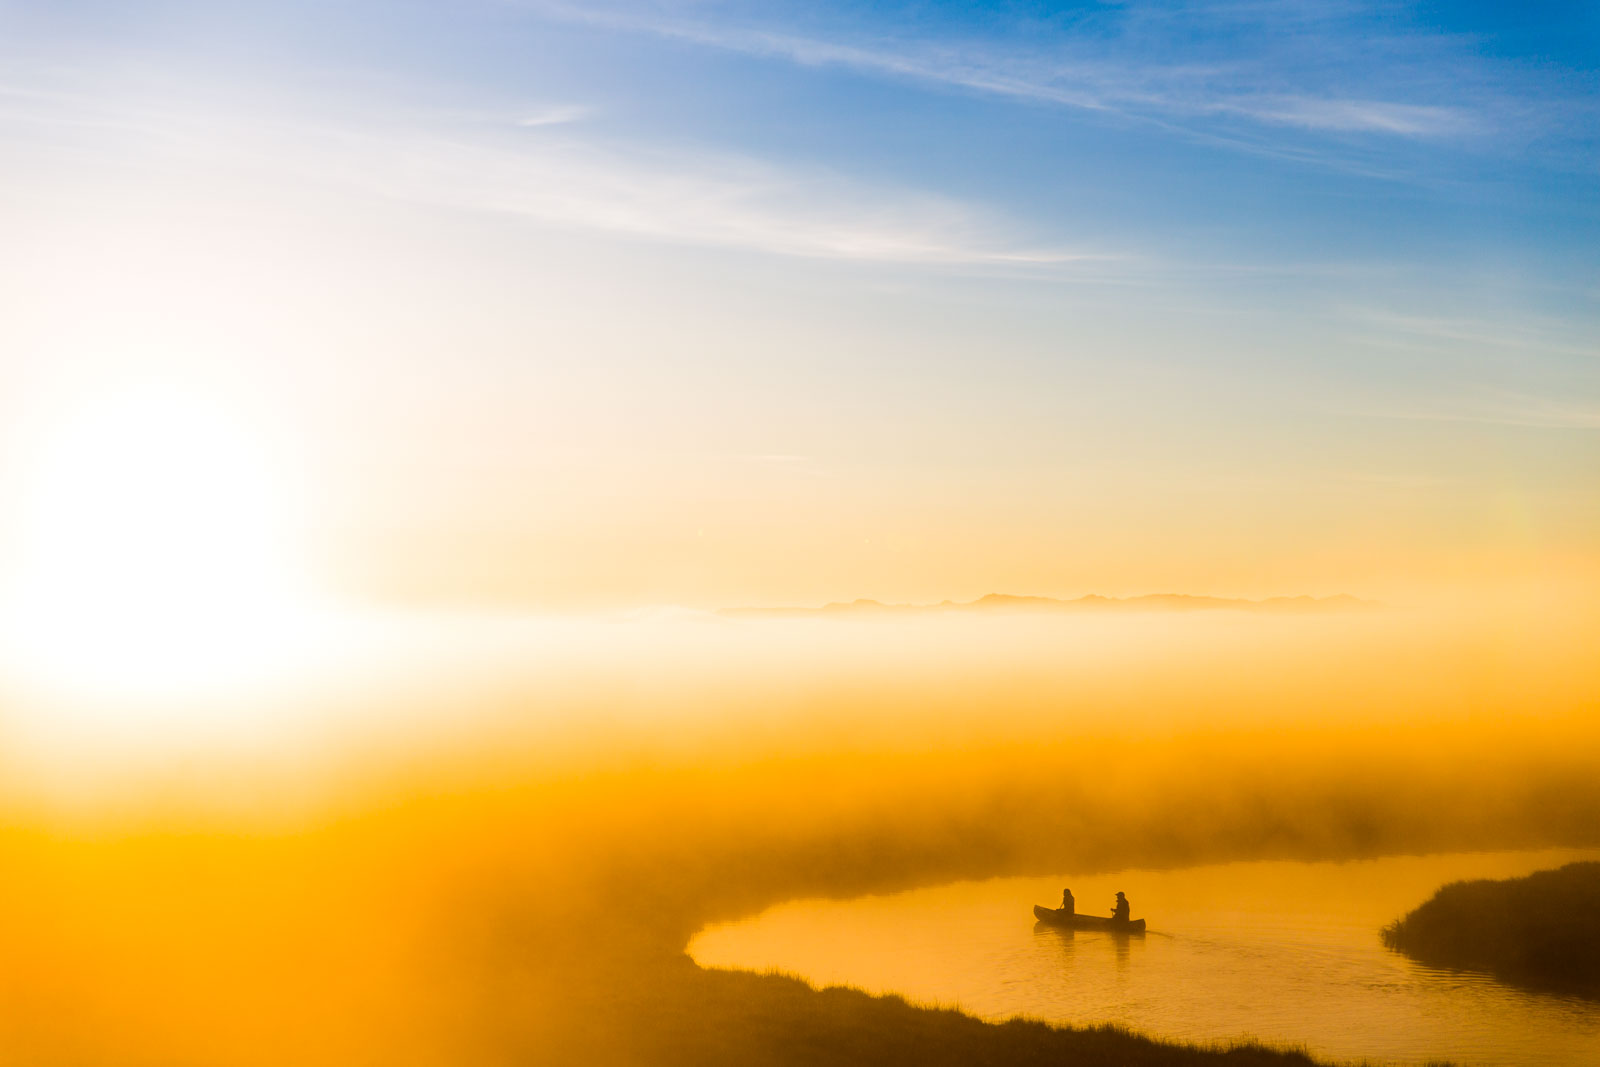 Canoeing in the morning Mist – Award winning adventure photographer – Winner of PX3, Prix de la Photographie Paris